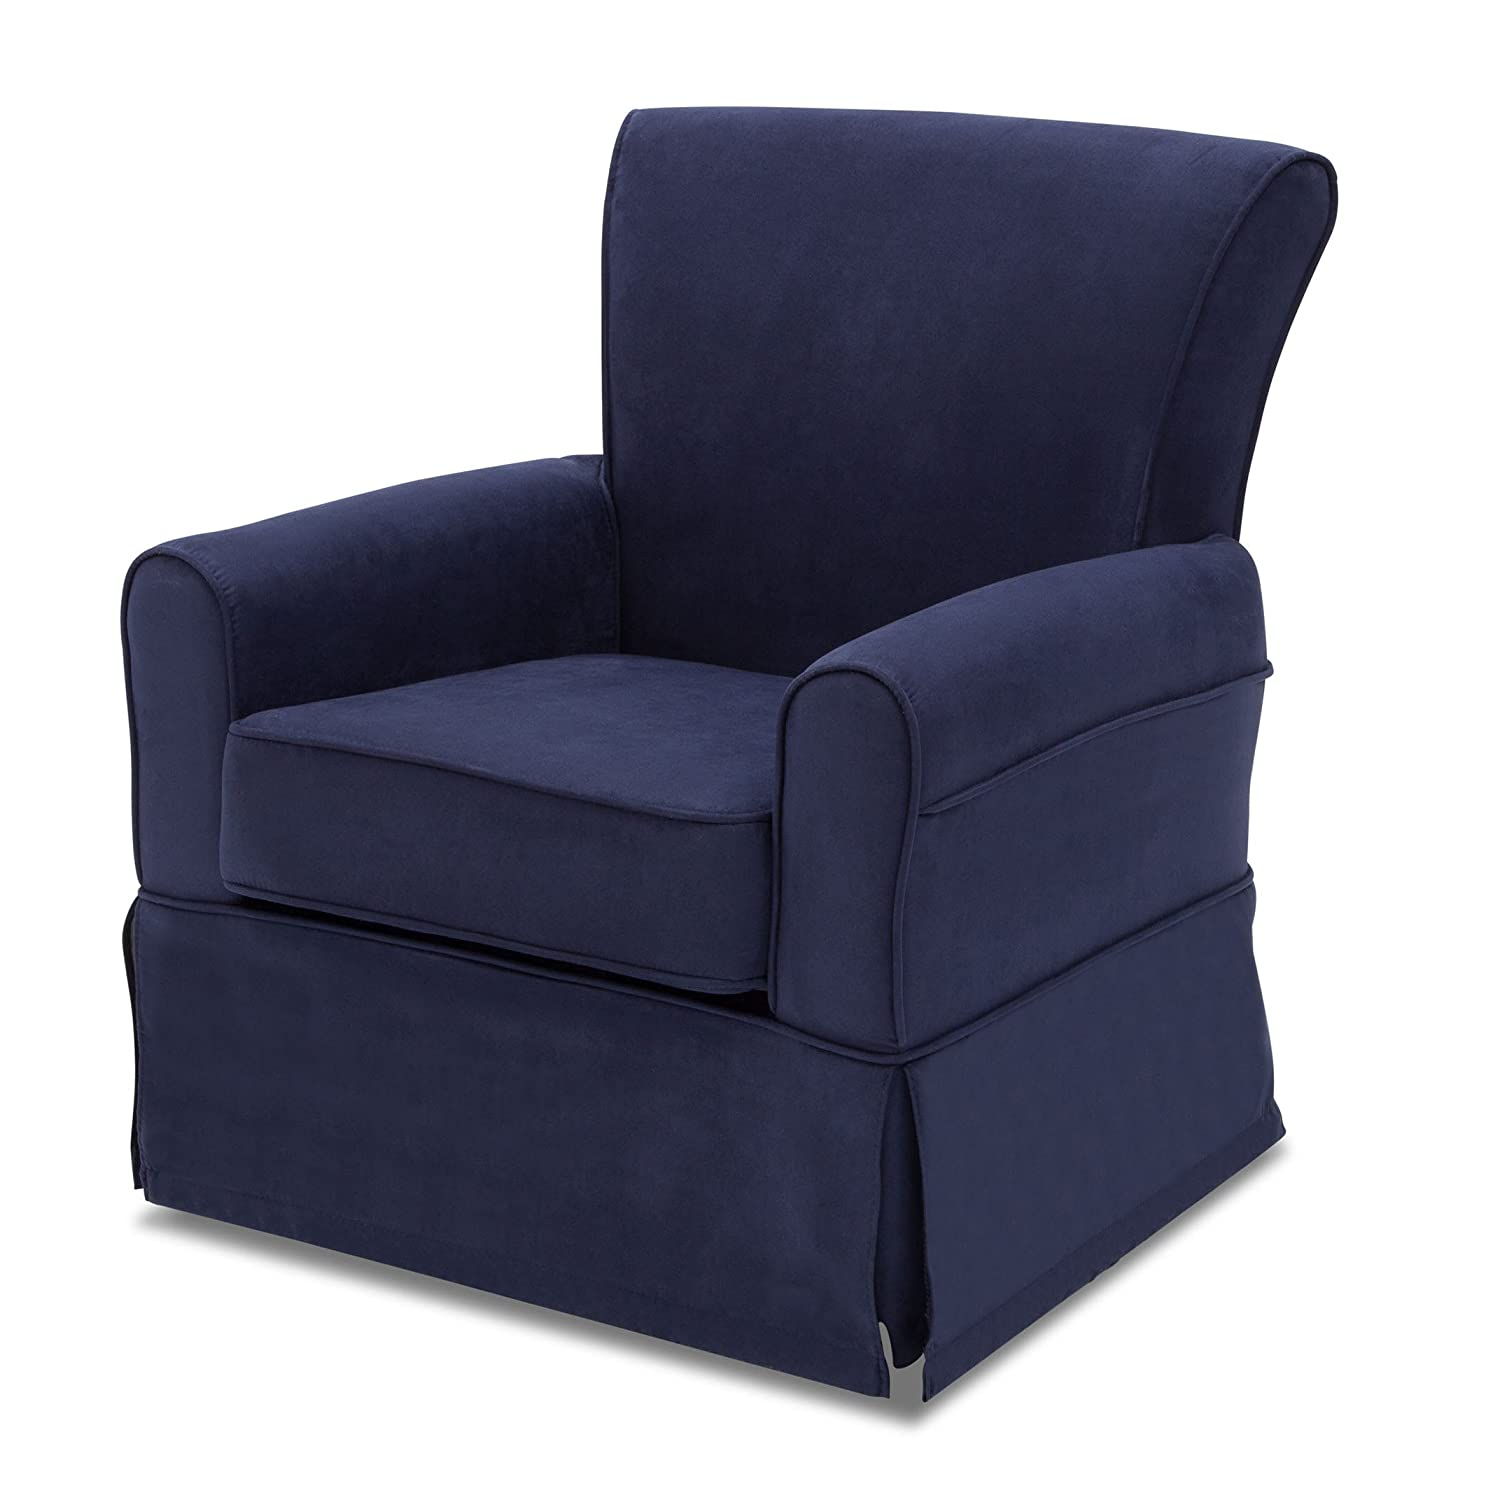 Delta Children Benbridge Glider Swivel Rocker Chair, Frozen Blue with Cream Welt 70967-499